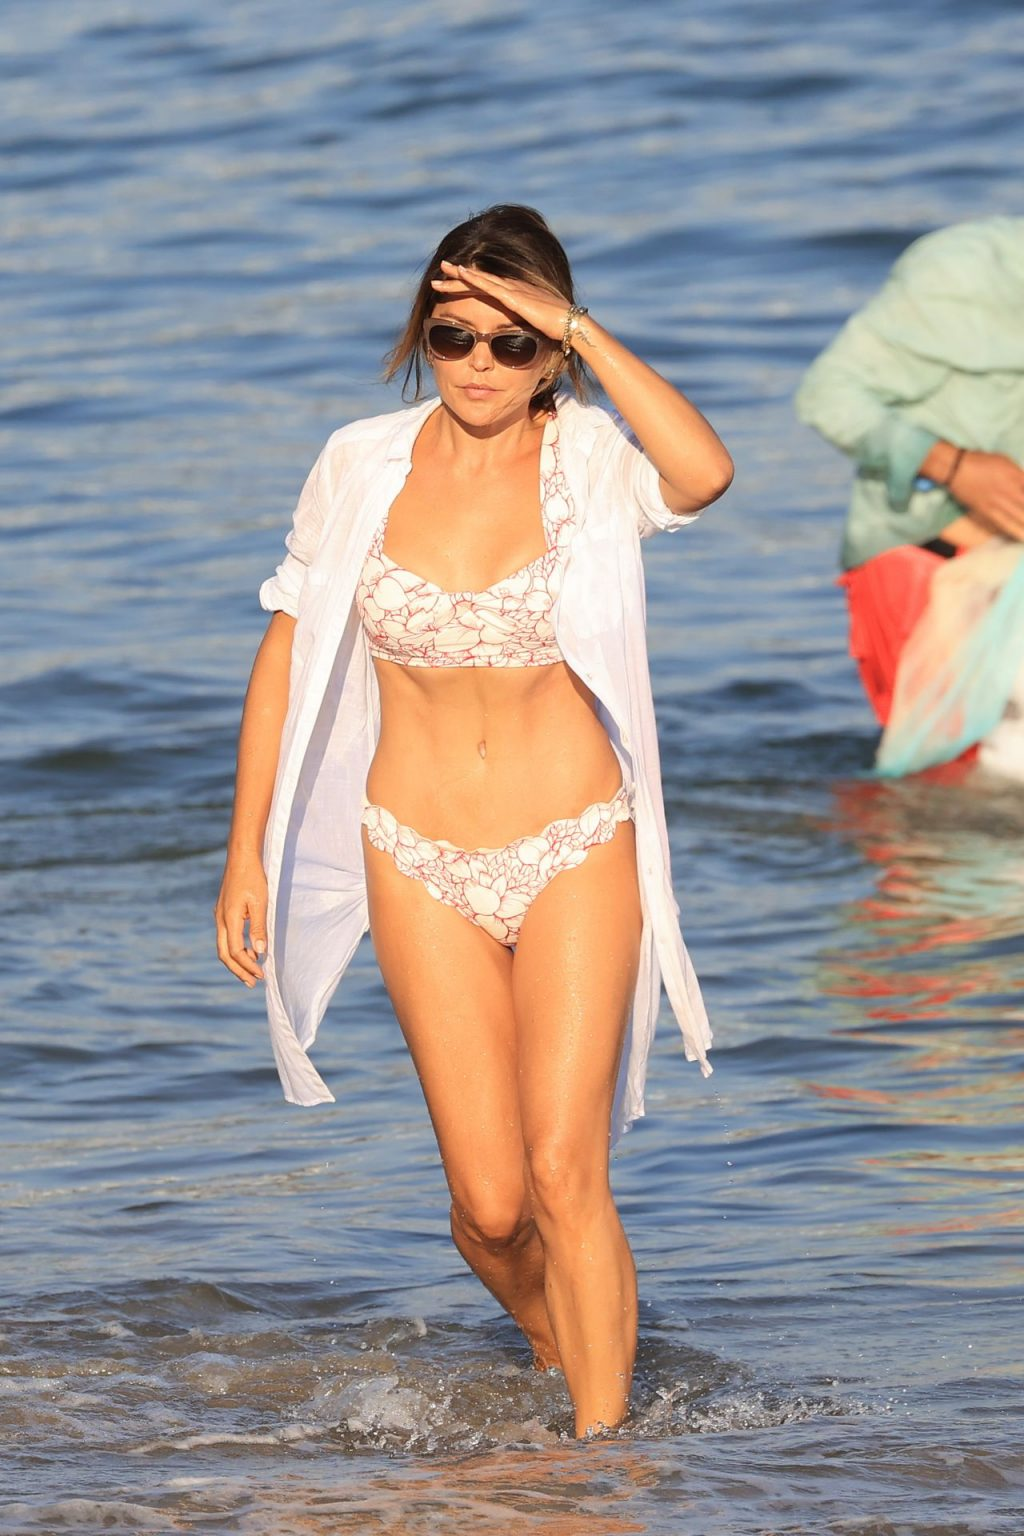 Danielle Bux Shows Off Her Sexy Body on the Beach in Malibu (8 Photos)